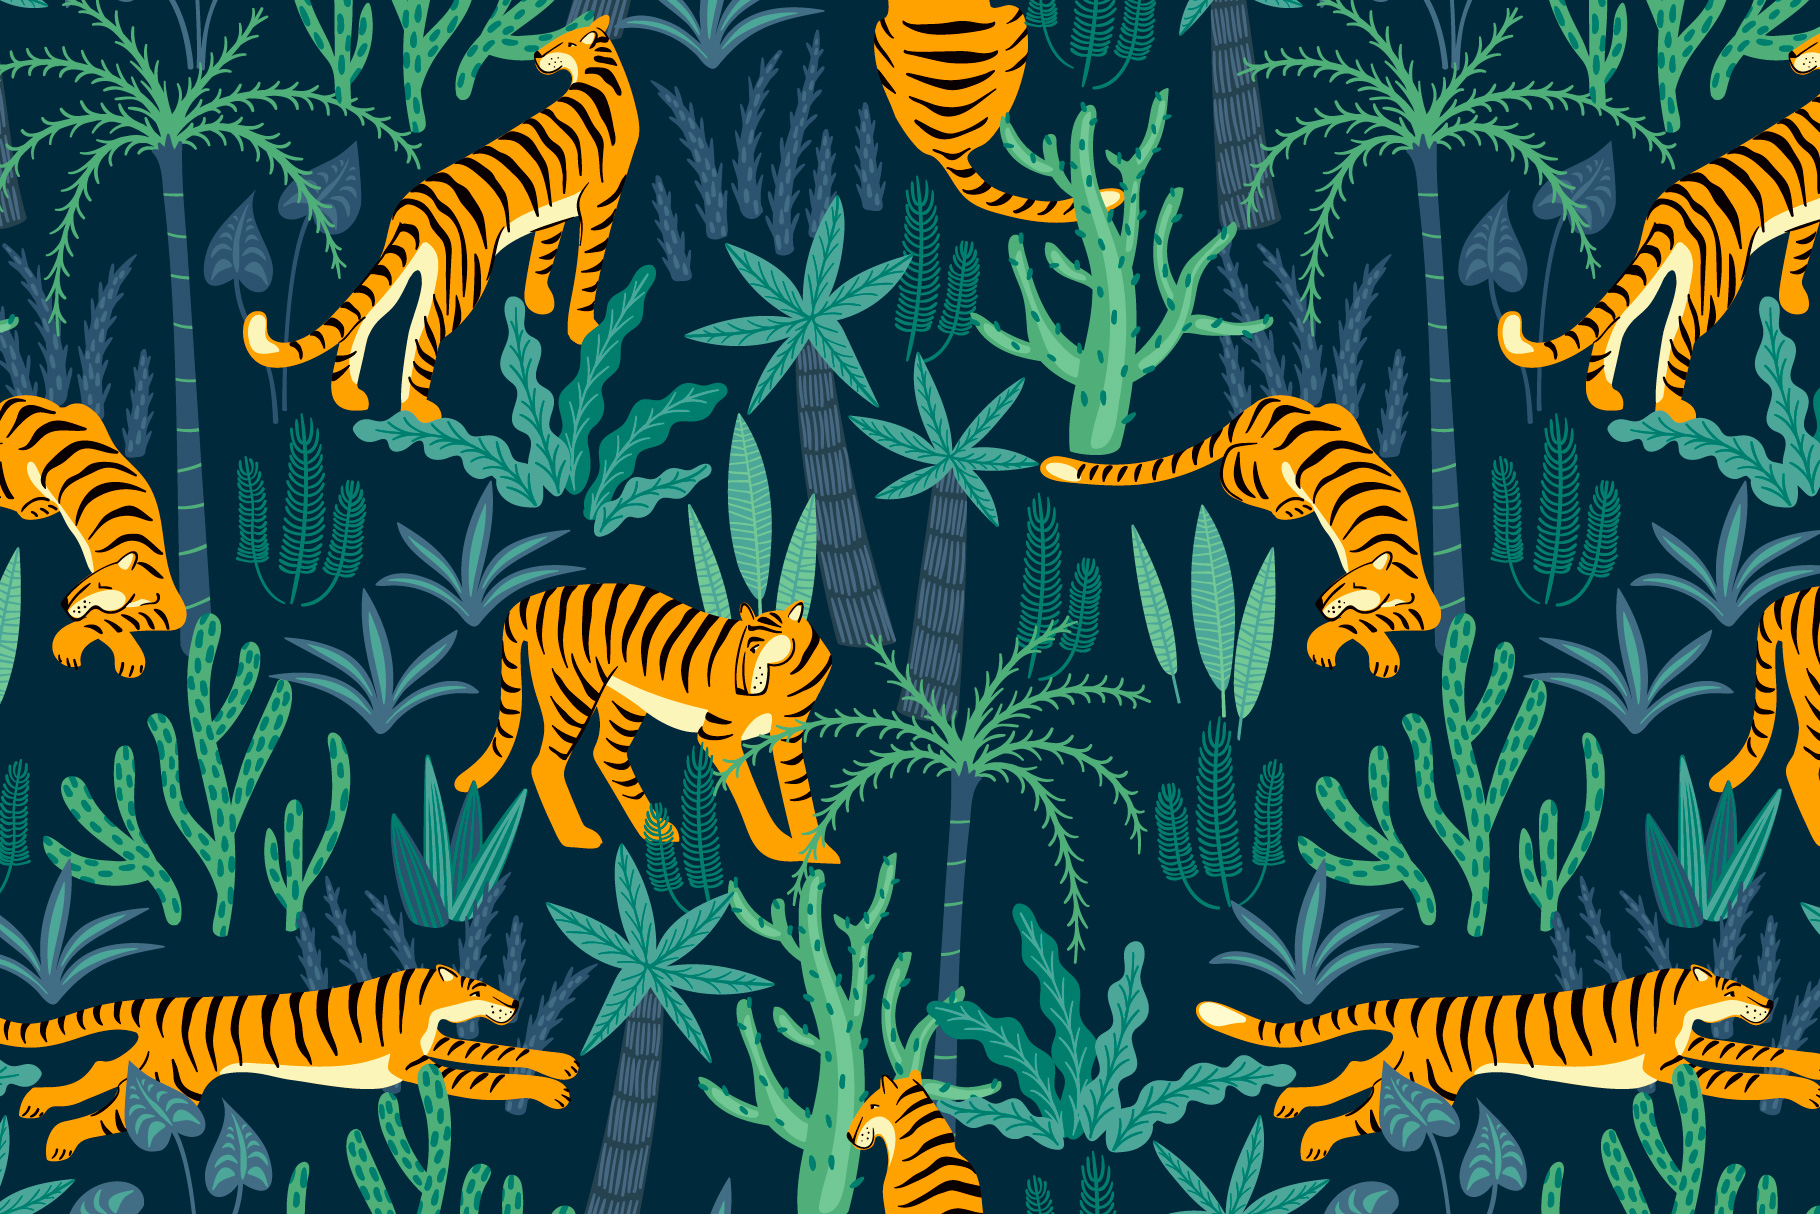 Tiger collection. Patterns & clipart example image 10